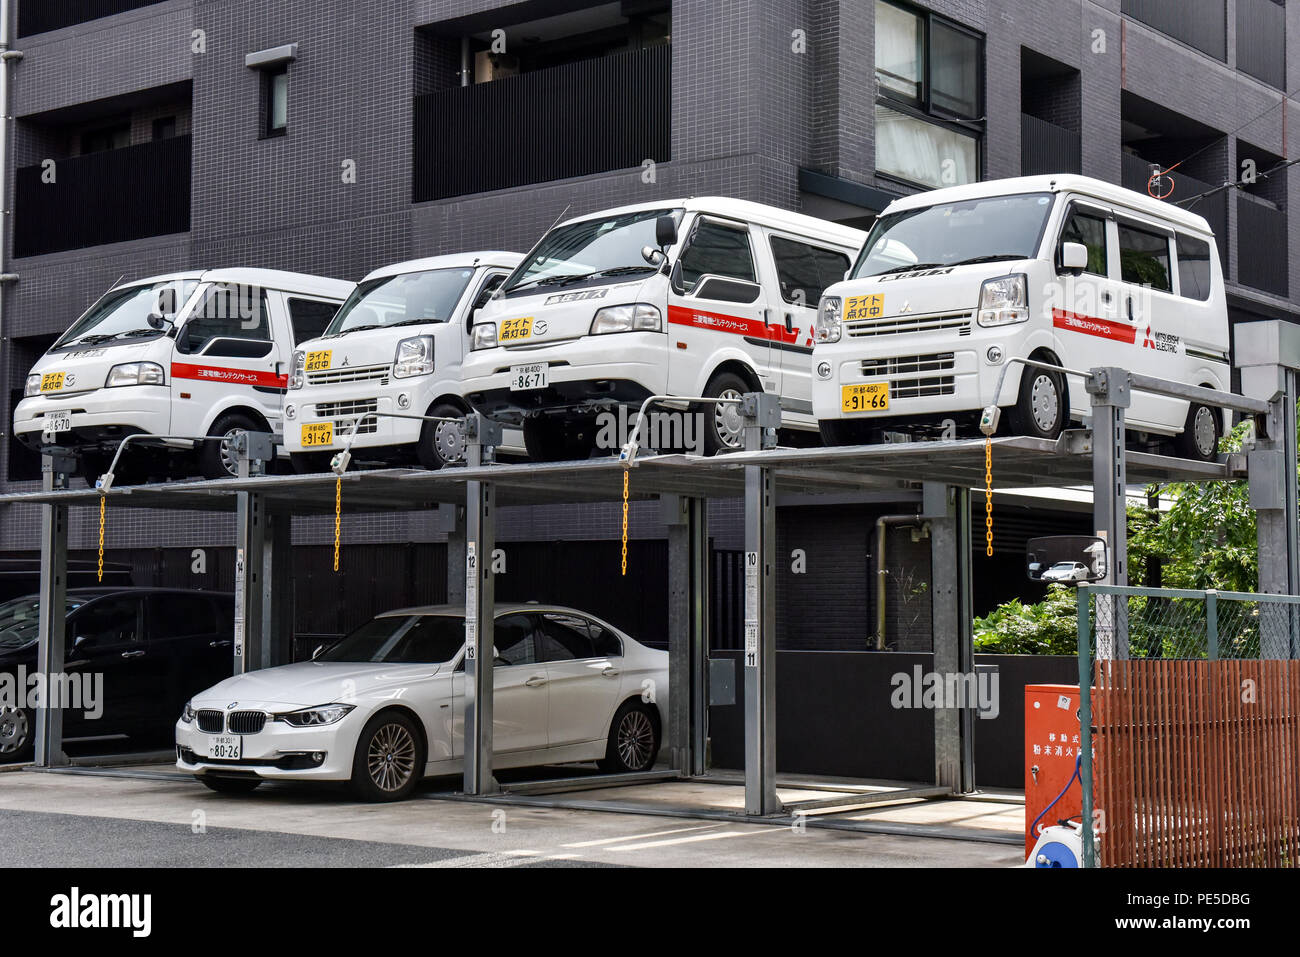 Cars stacked in a multi floors parking because of the lack of space, Kyoto Japan - Stock Image